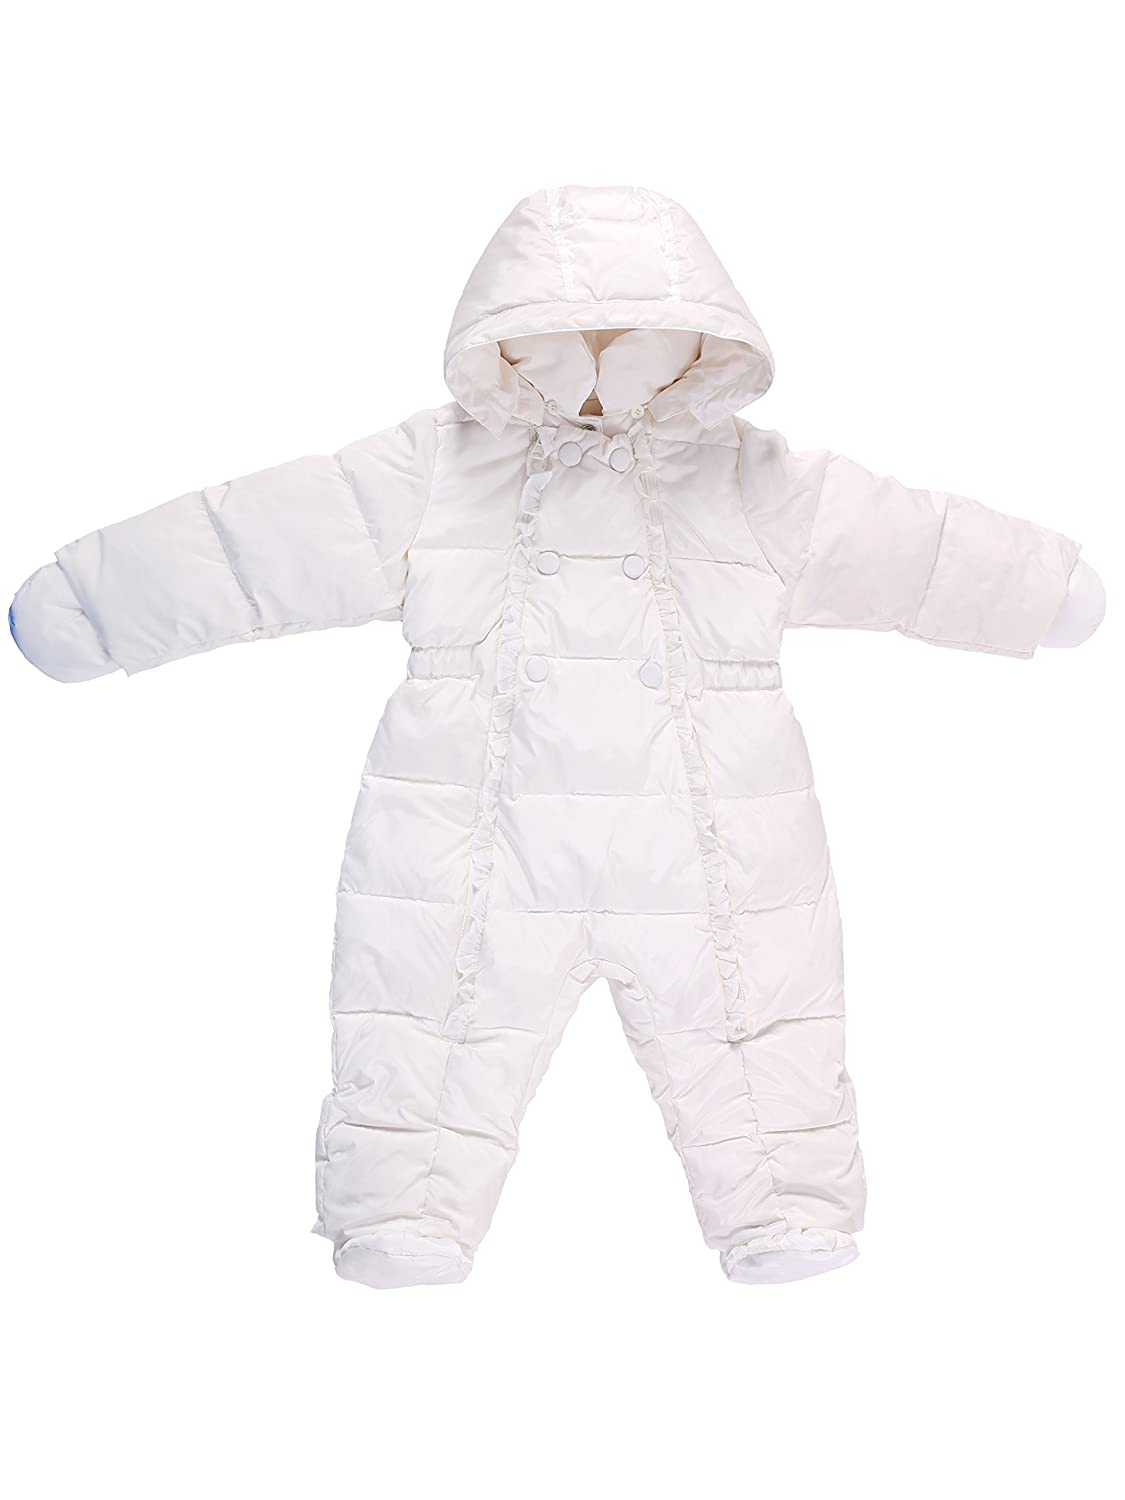 Oceankids Winter Baby Girl's One-Piece Detachable Hood Duck Down Snowsuit OC14021023WT-6M